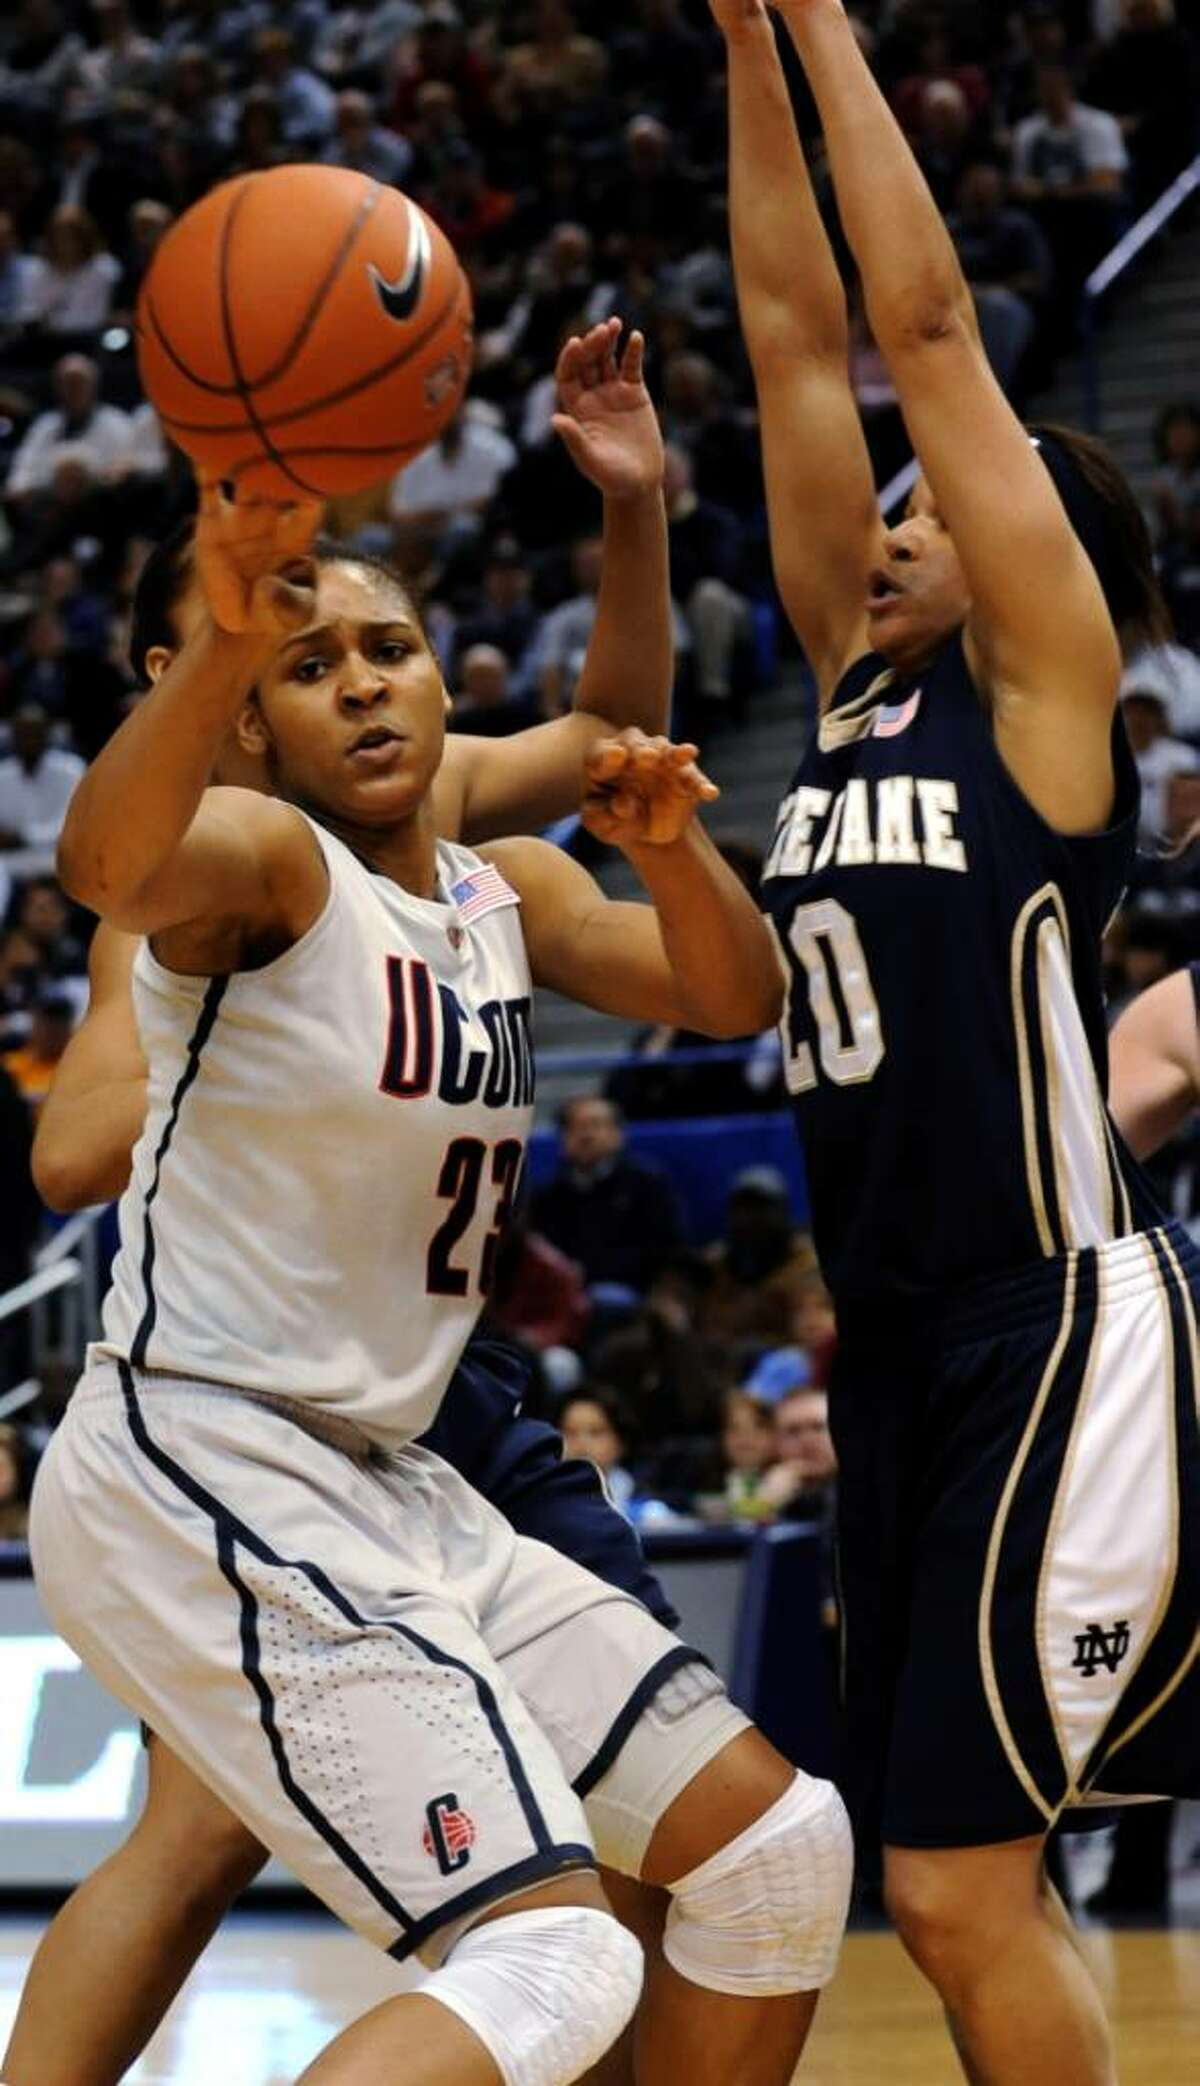 Connecticut's Maya More looks for a teammate to pass to as Notre Dame's Ashley Barlow defends during the first half of an NCAA college basketball game in the semifinals of the Big East tournament in Hartford, Conn., Monday, March 8, 2010. (AP Photo/Bob Child)